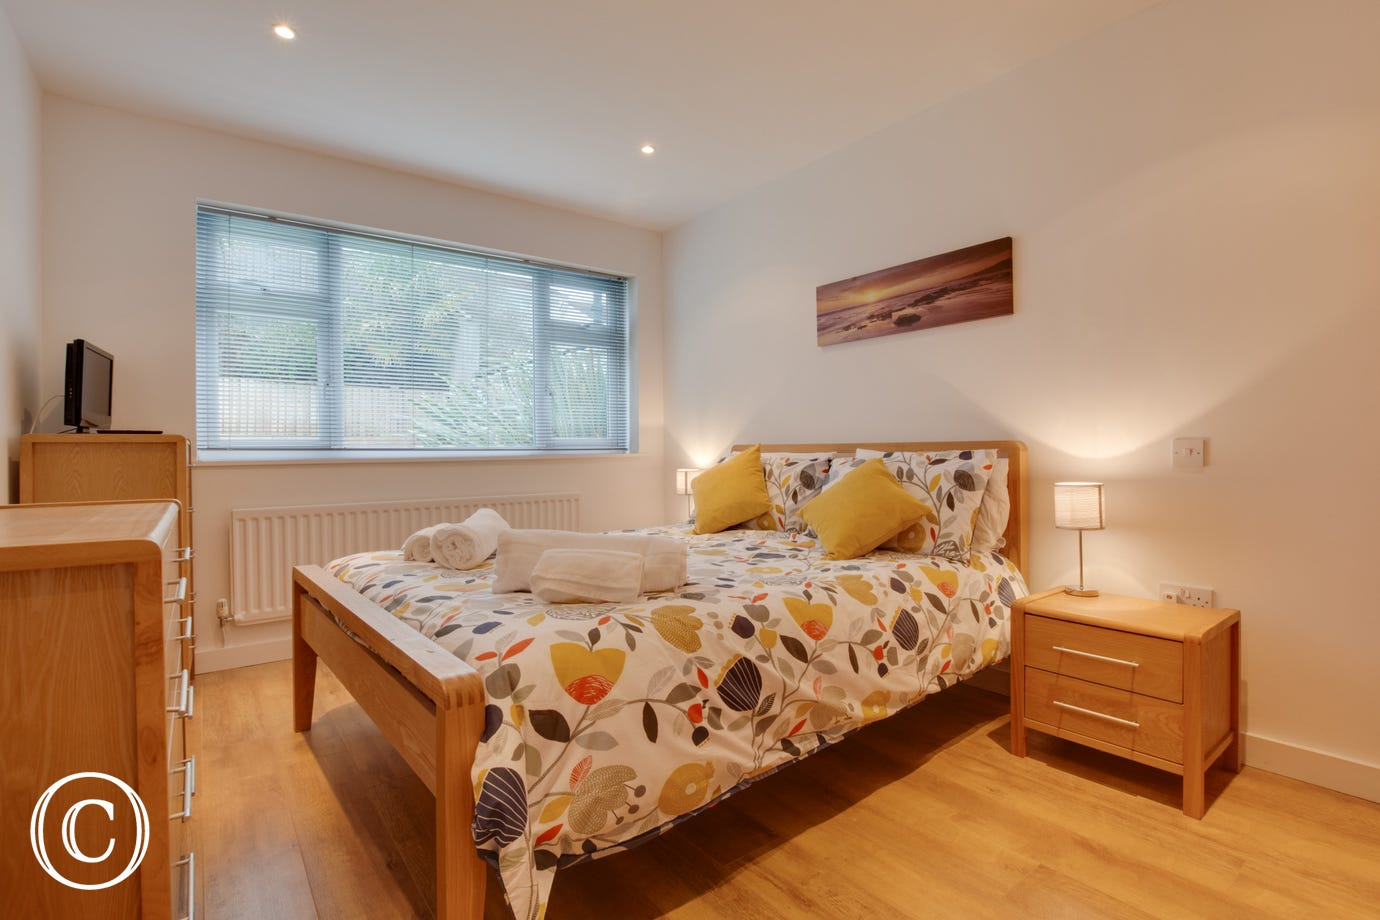 Modern bungalow in Saundersfoot. Self Catering. Double bedroom